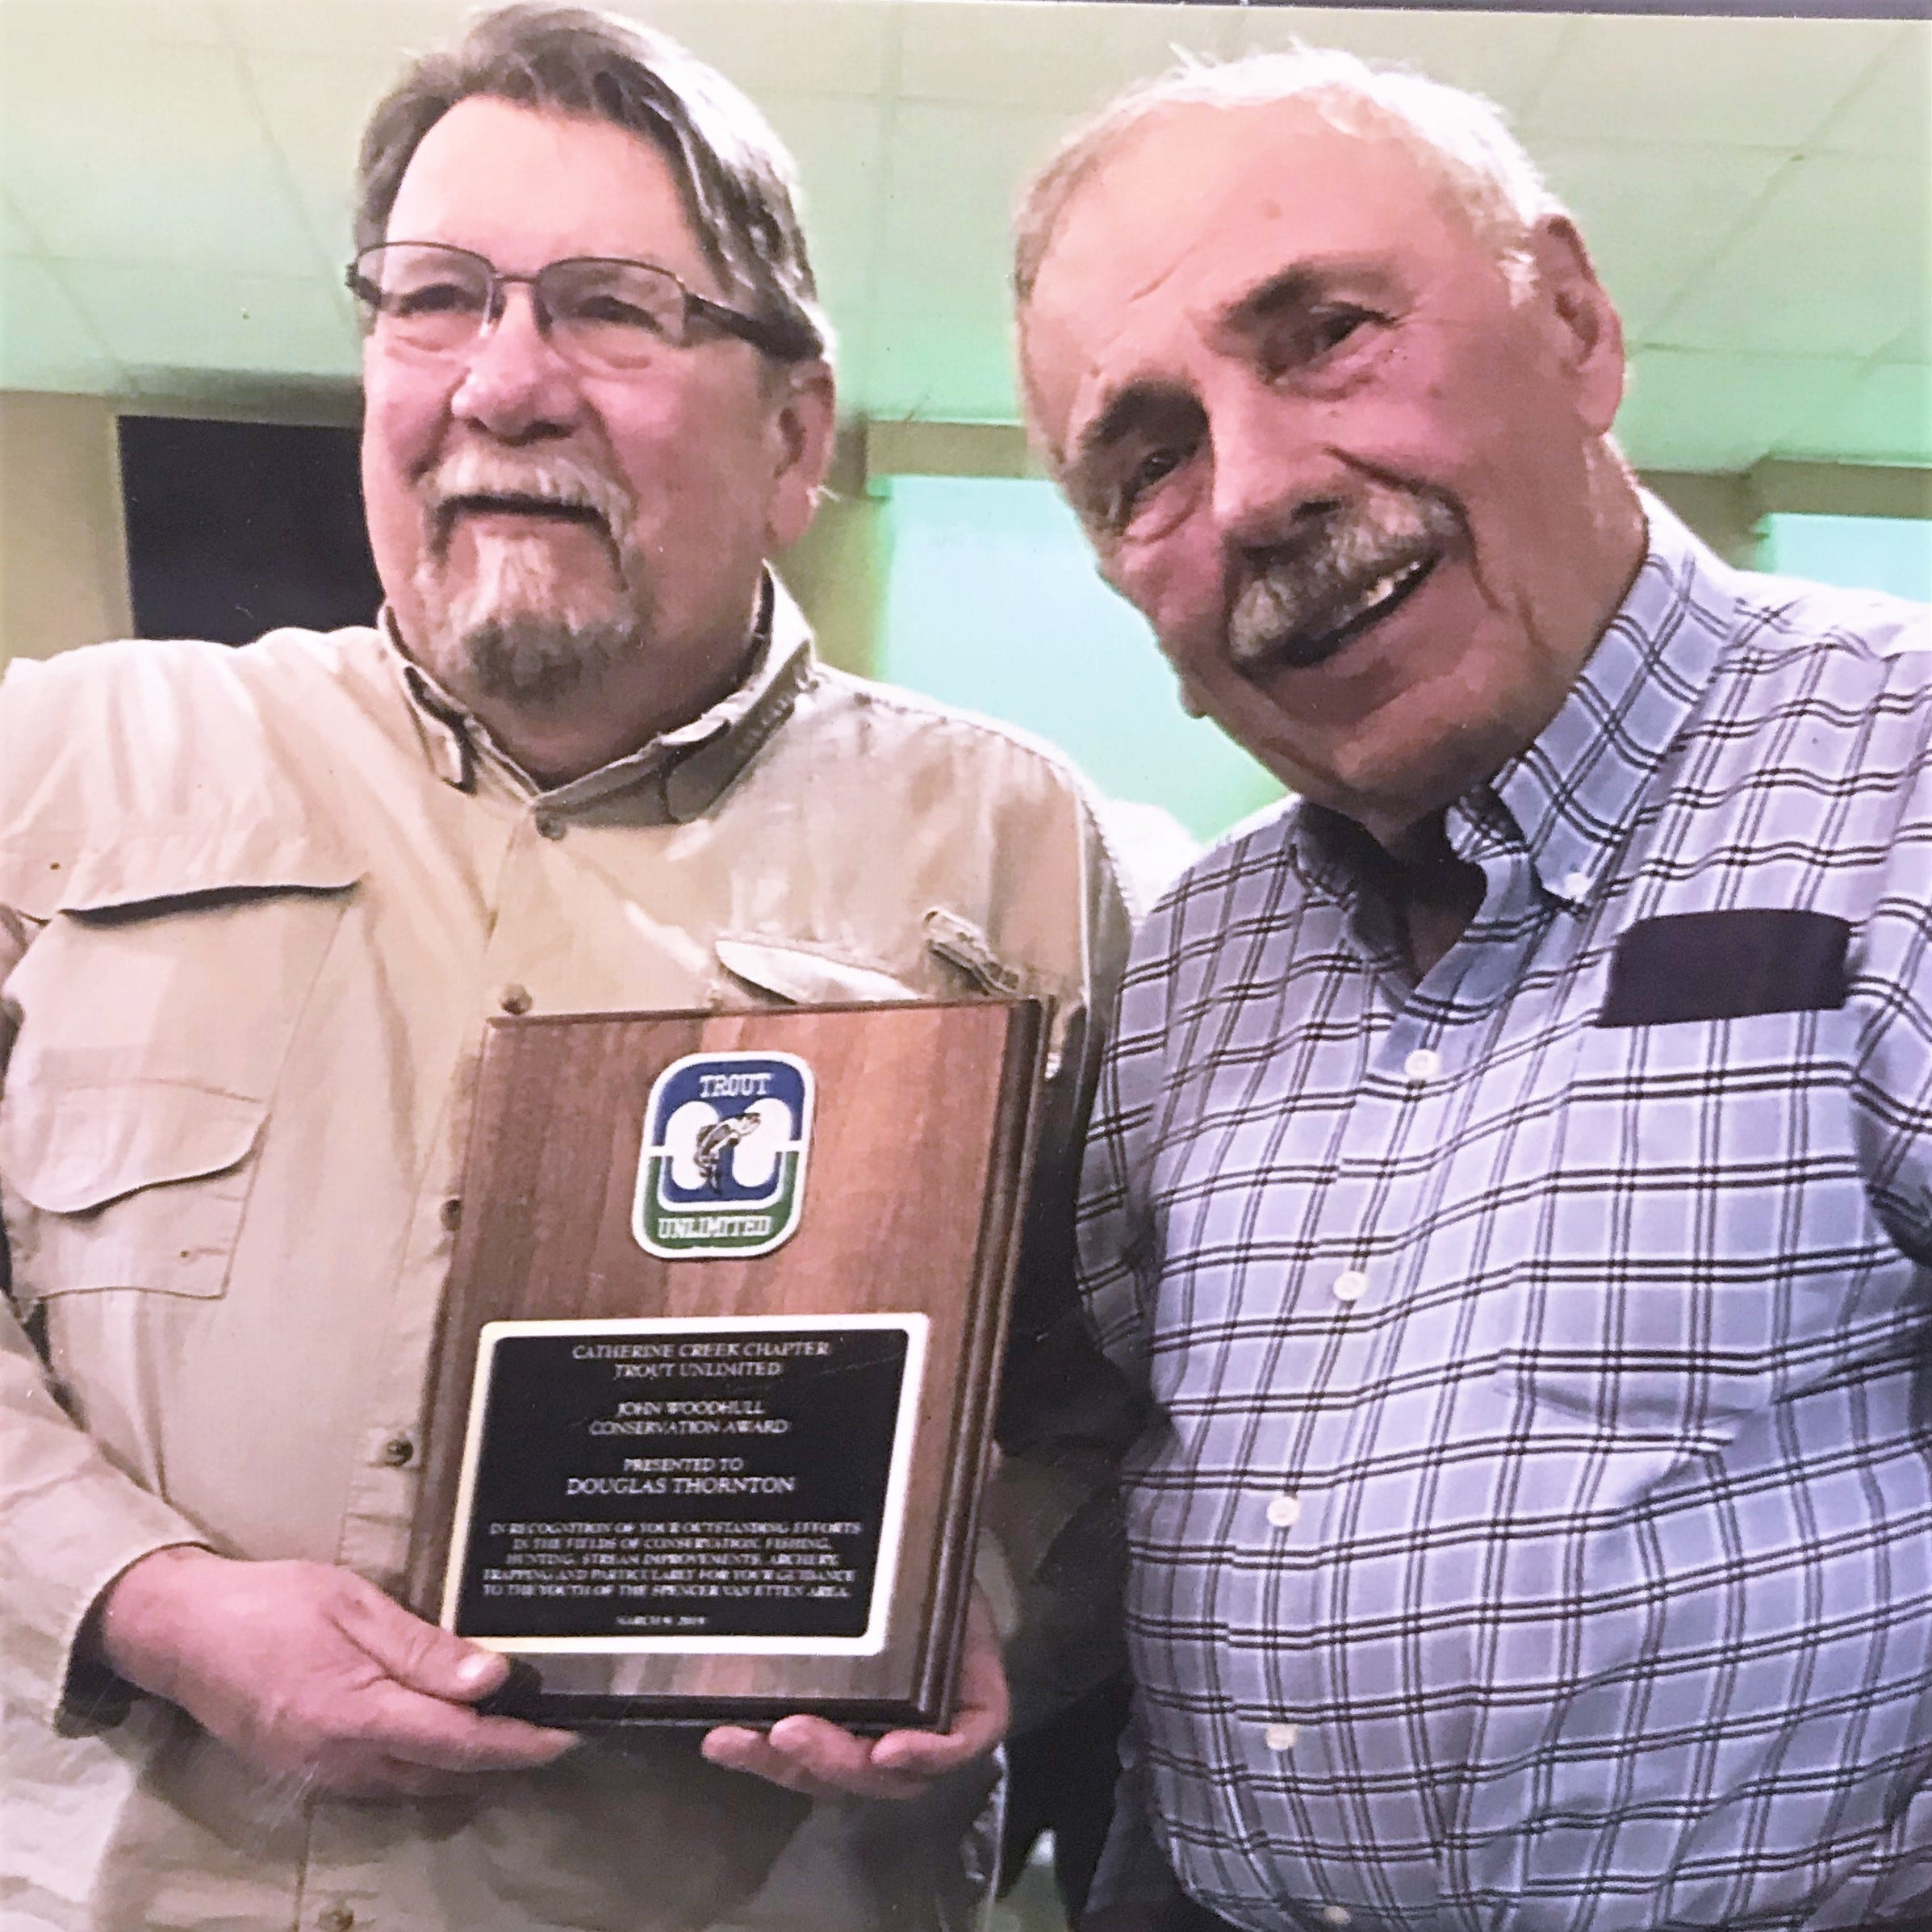 Local Trout Unlimited chapter presents conservation award